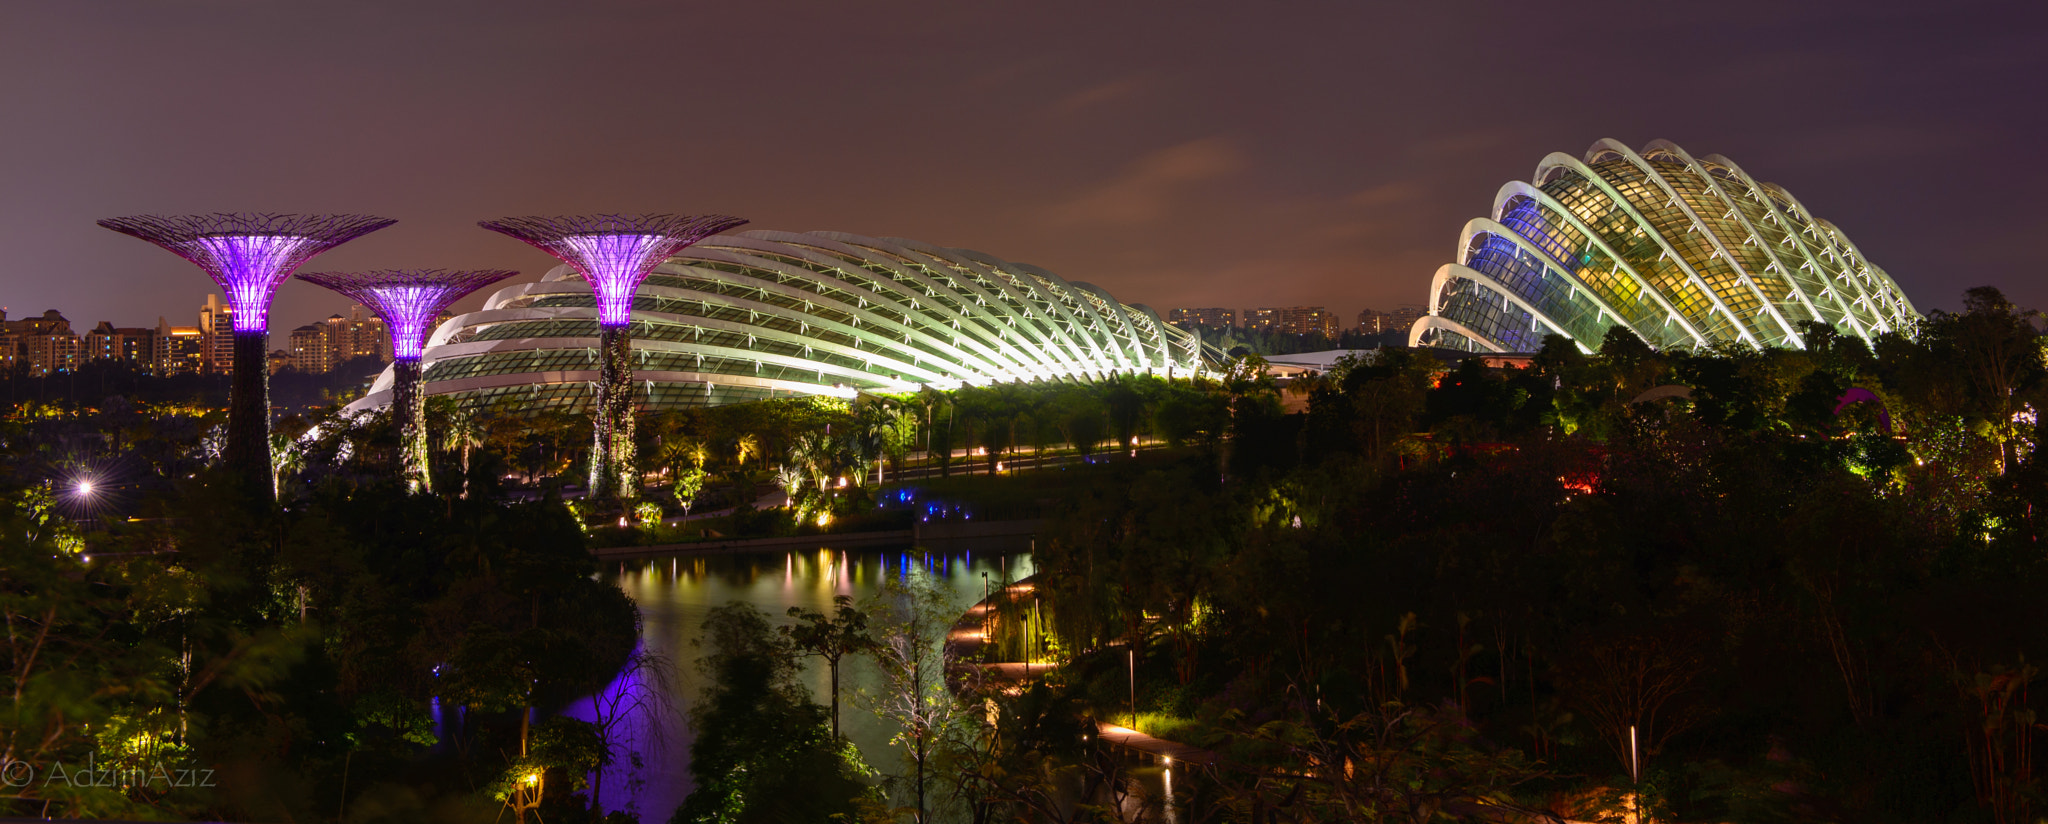 Photograph Garden by the bay by Adzim Aziz on 500px